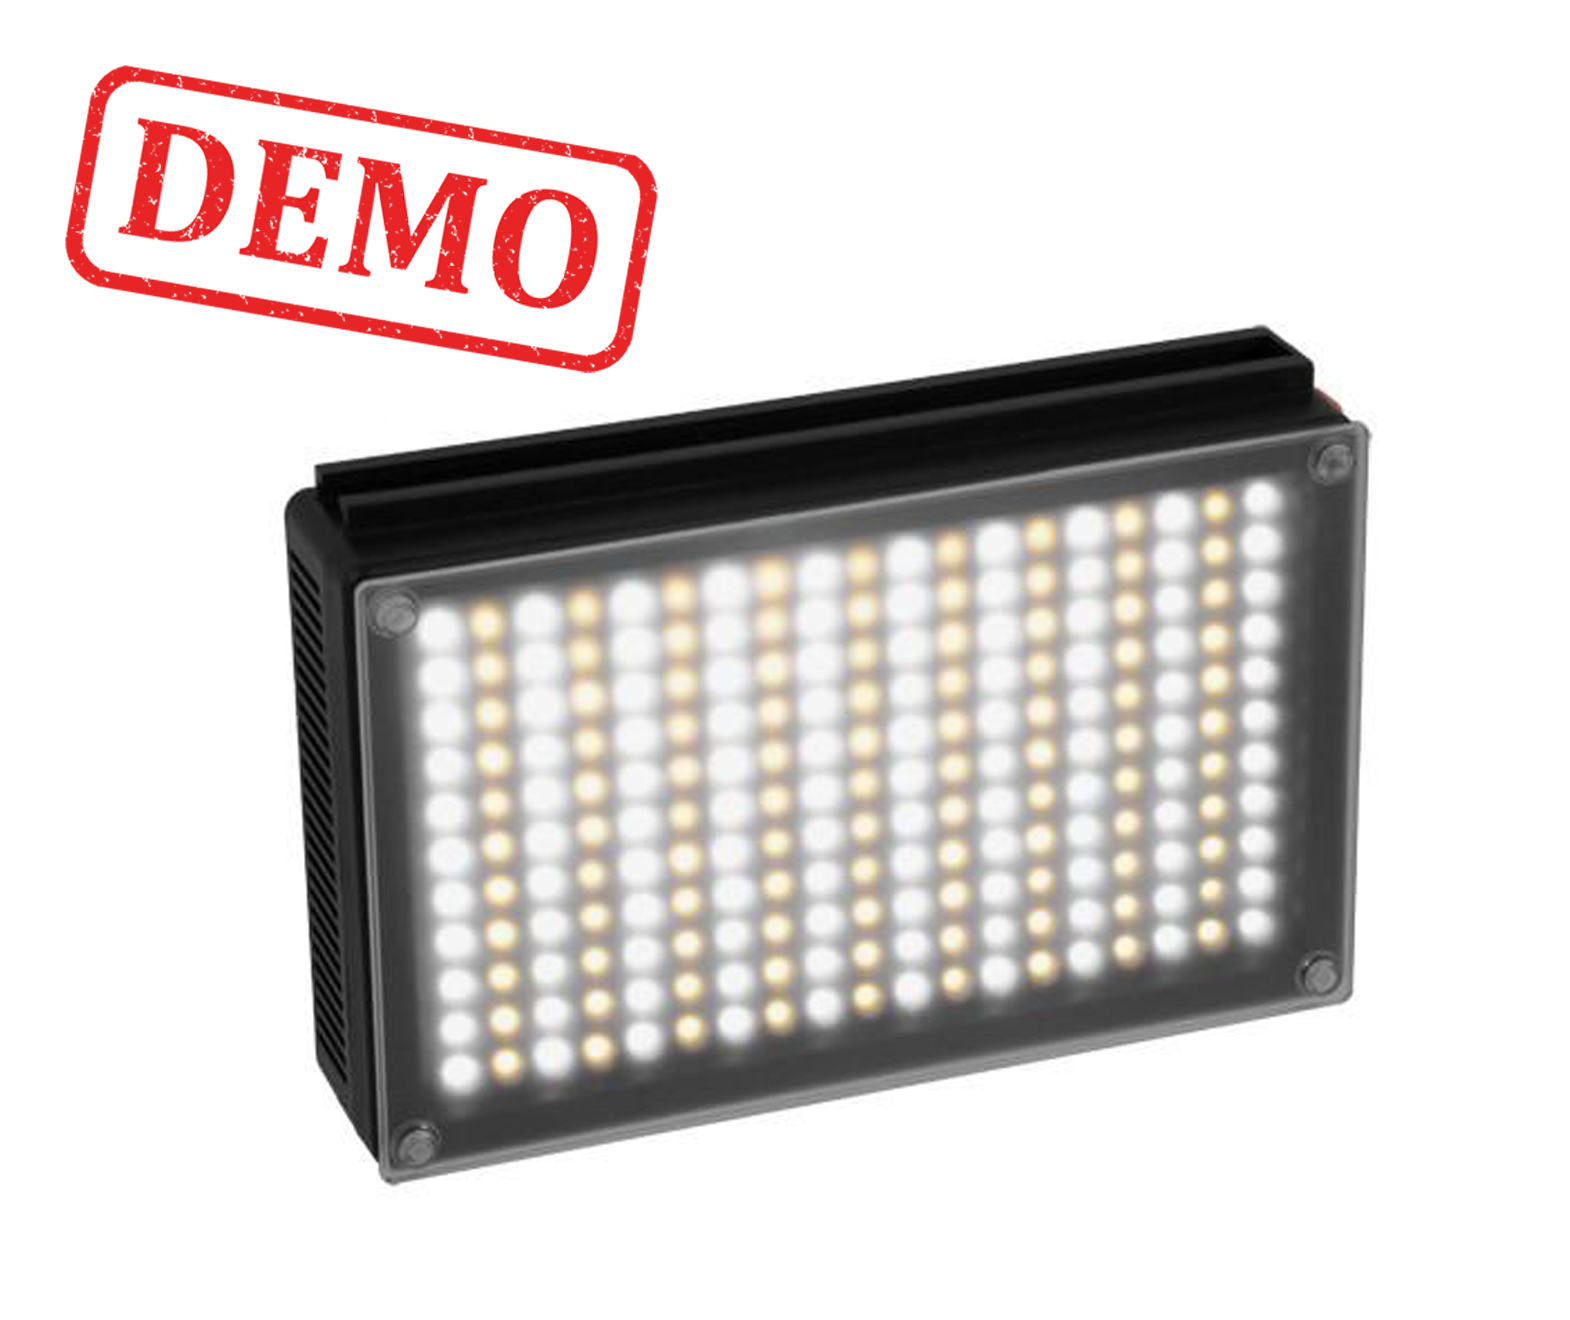 DEMO - FOTODIOX LED 209AS (LED 209) BICOLOR LIGHT KIT + DIMMER